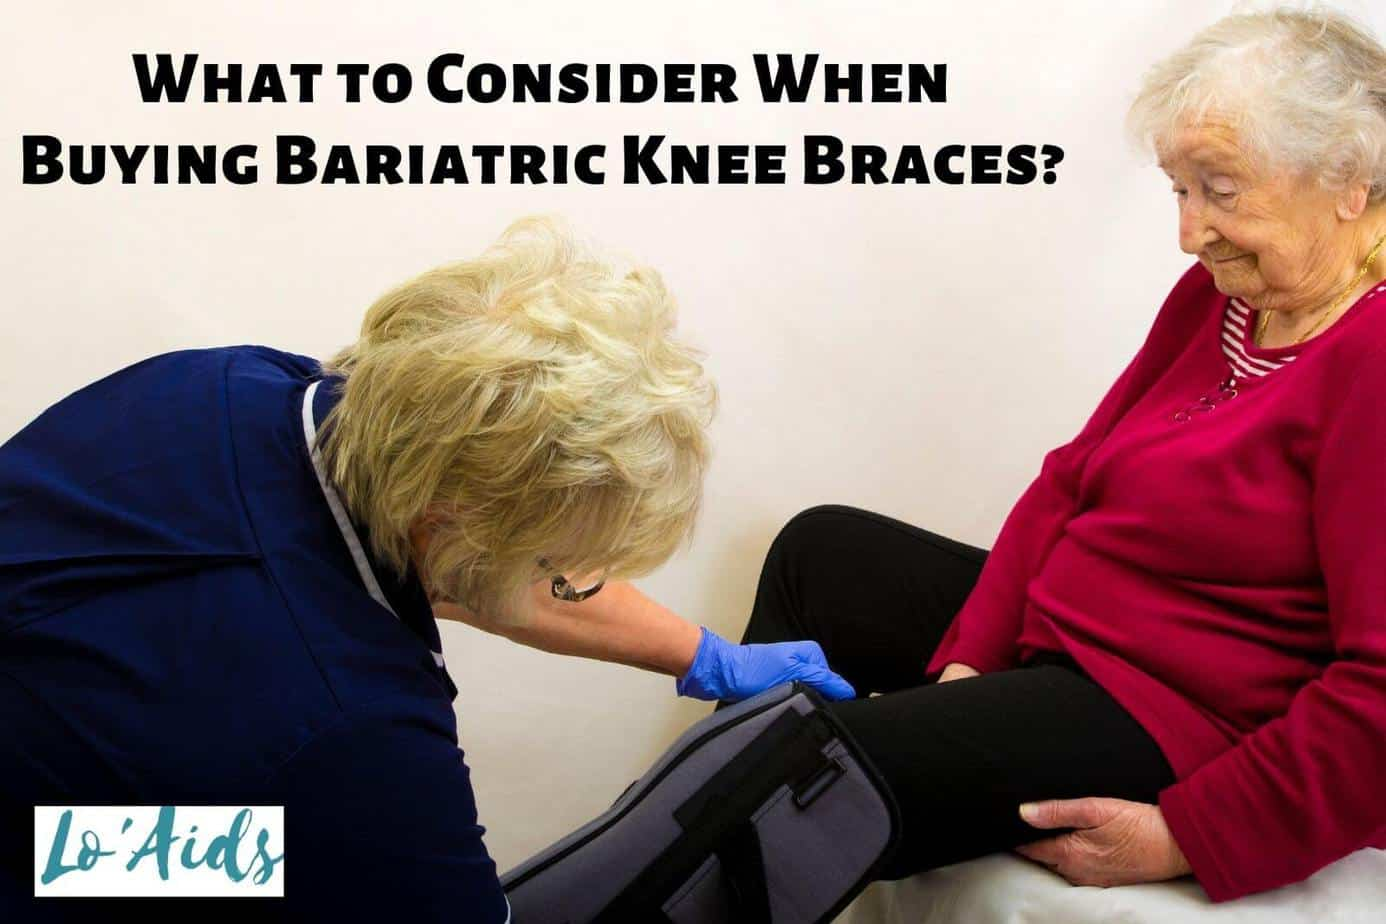 a doctor putting bariatric knee braces to a senior